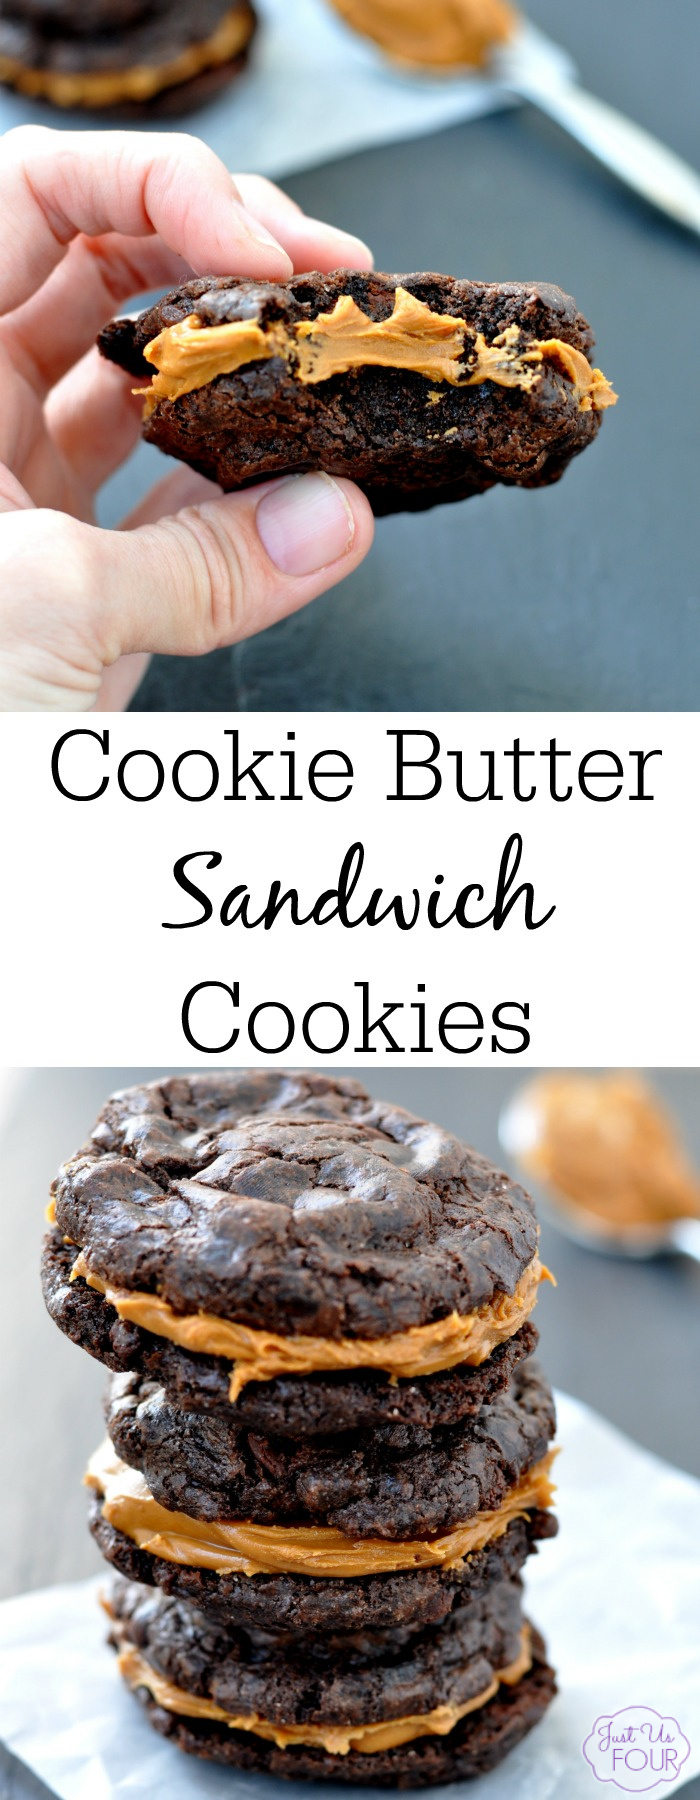 Two amazing fudge cookies with cookie butter sandwiched in between. This cookie recipe is to die for and makes the perfect decadent dessert.